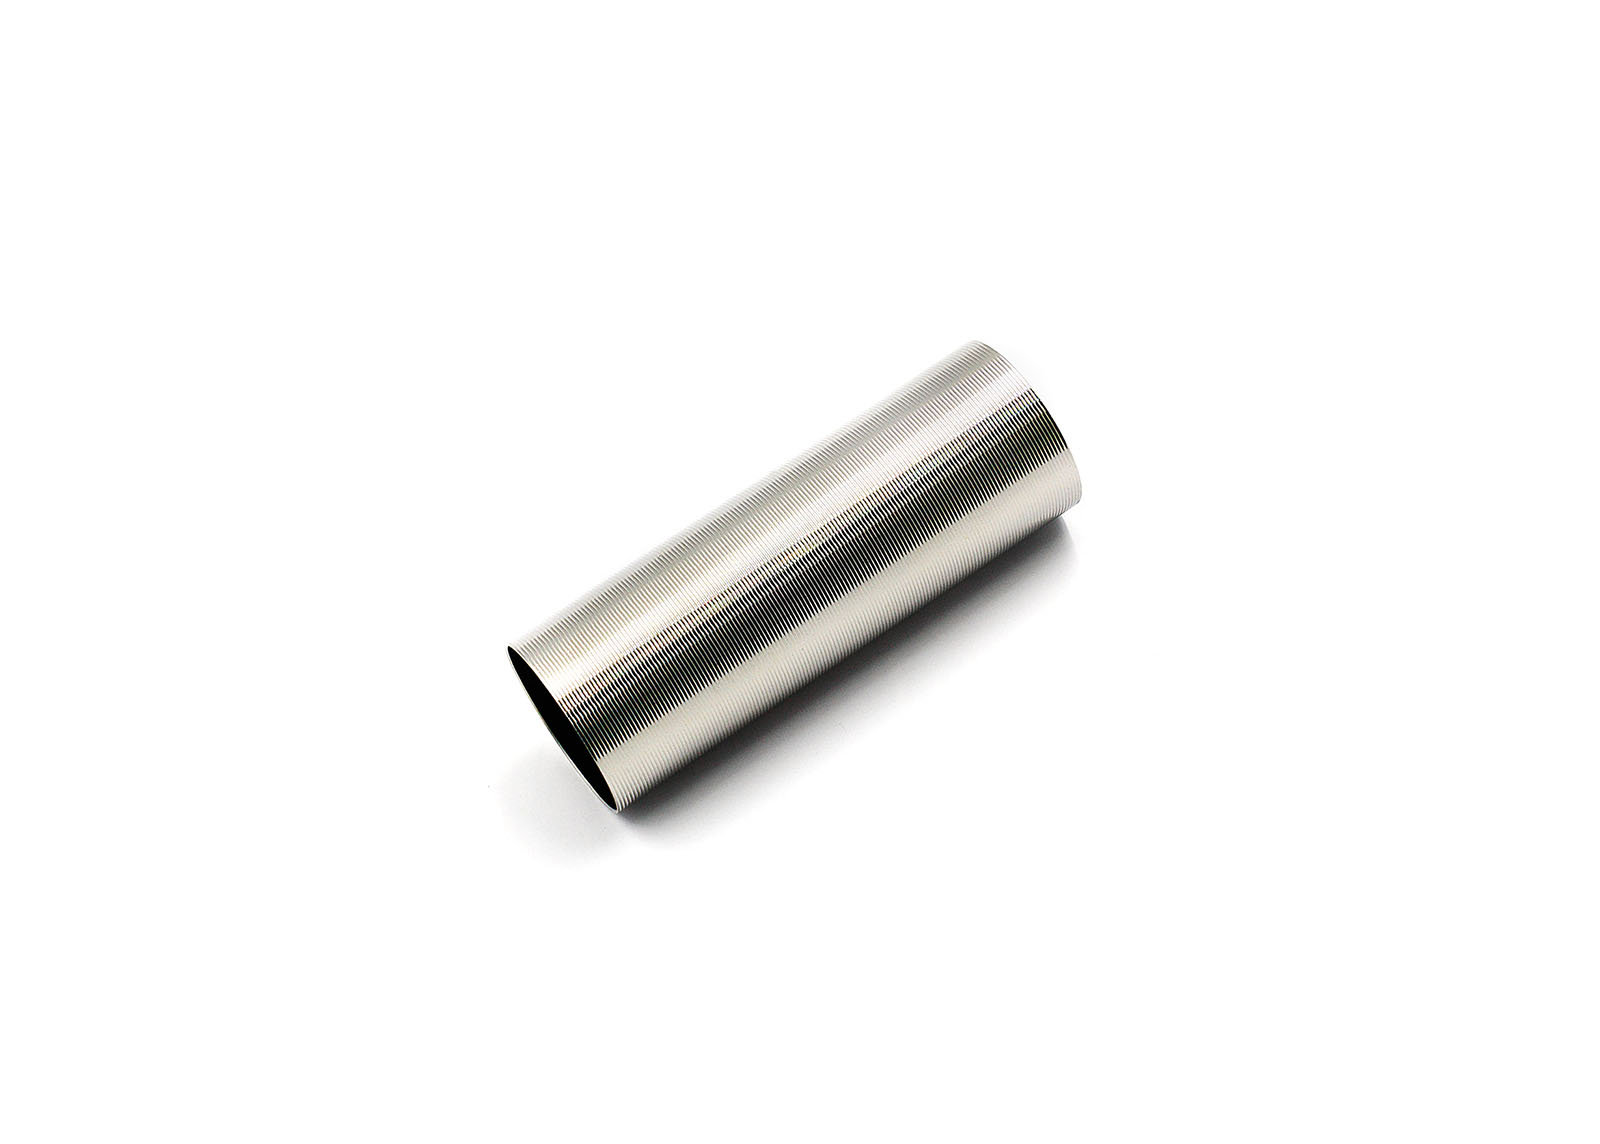 Bore-Up Cylinder Type 0 for M16-A1/A2/VN, AUG, AK47, G3 - Modify Airsoft parts